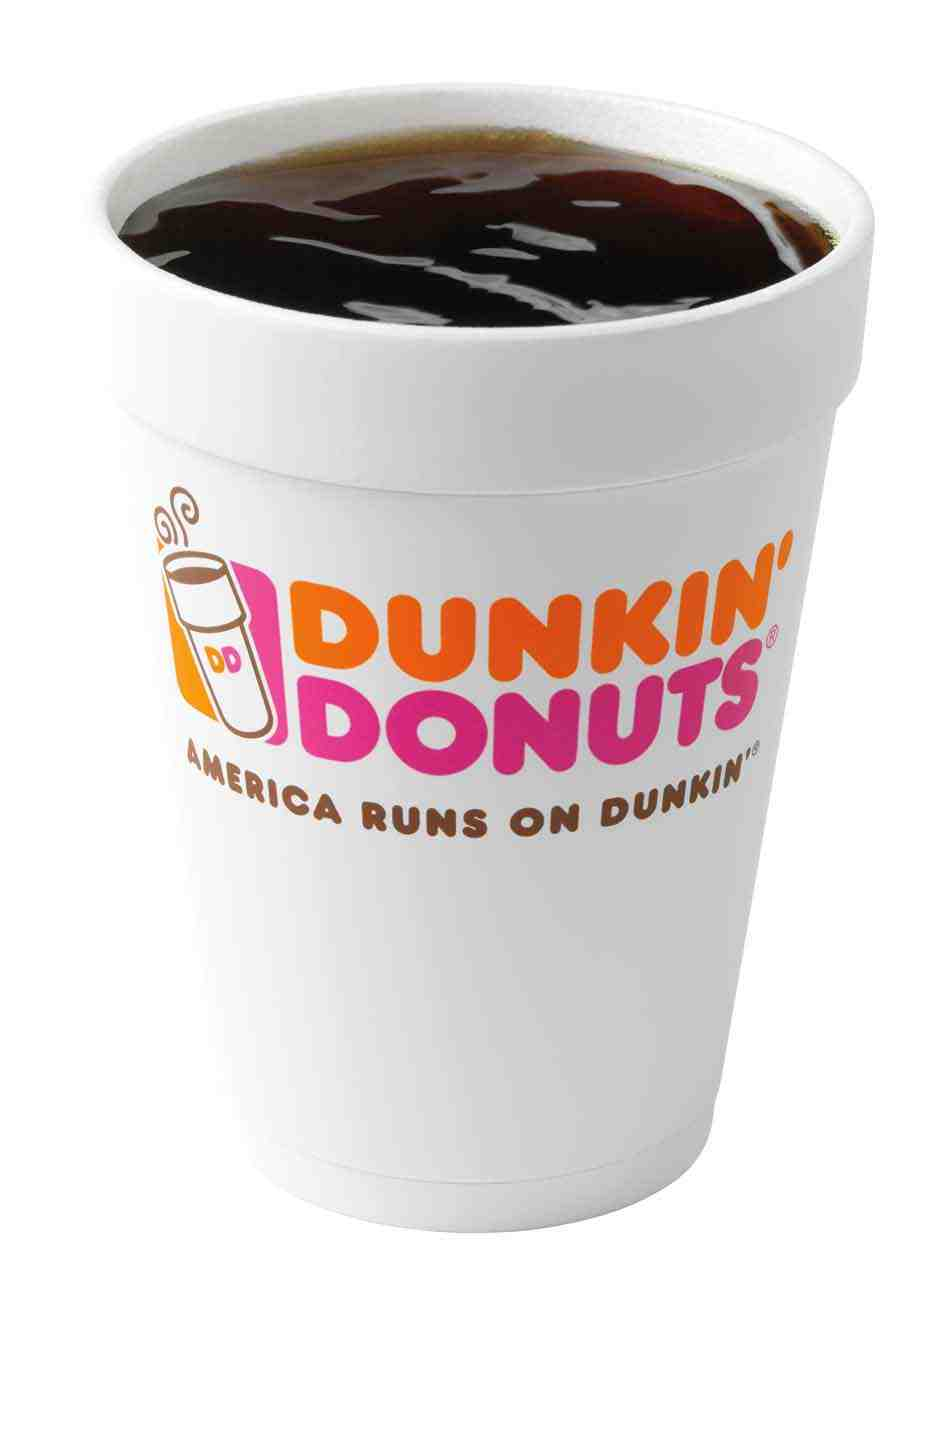 dunkin donuts or starbucks dunkin has clear lead in